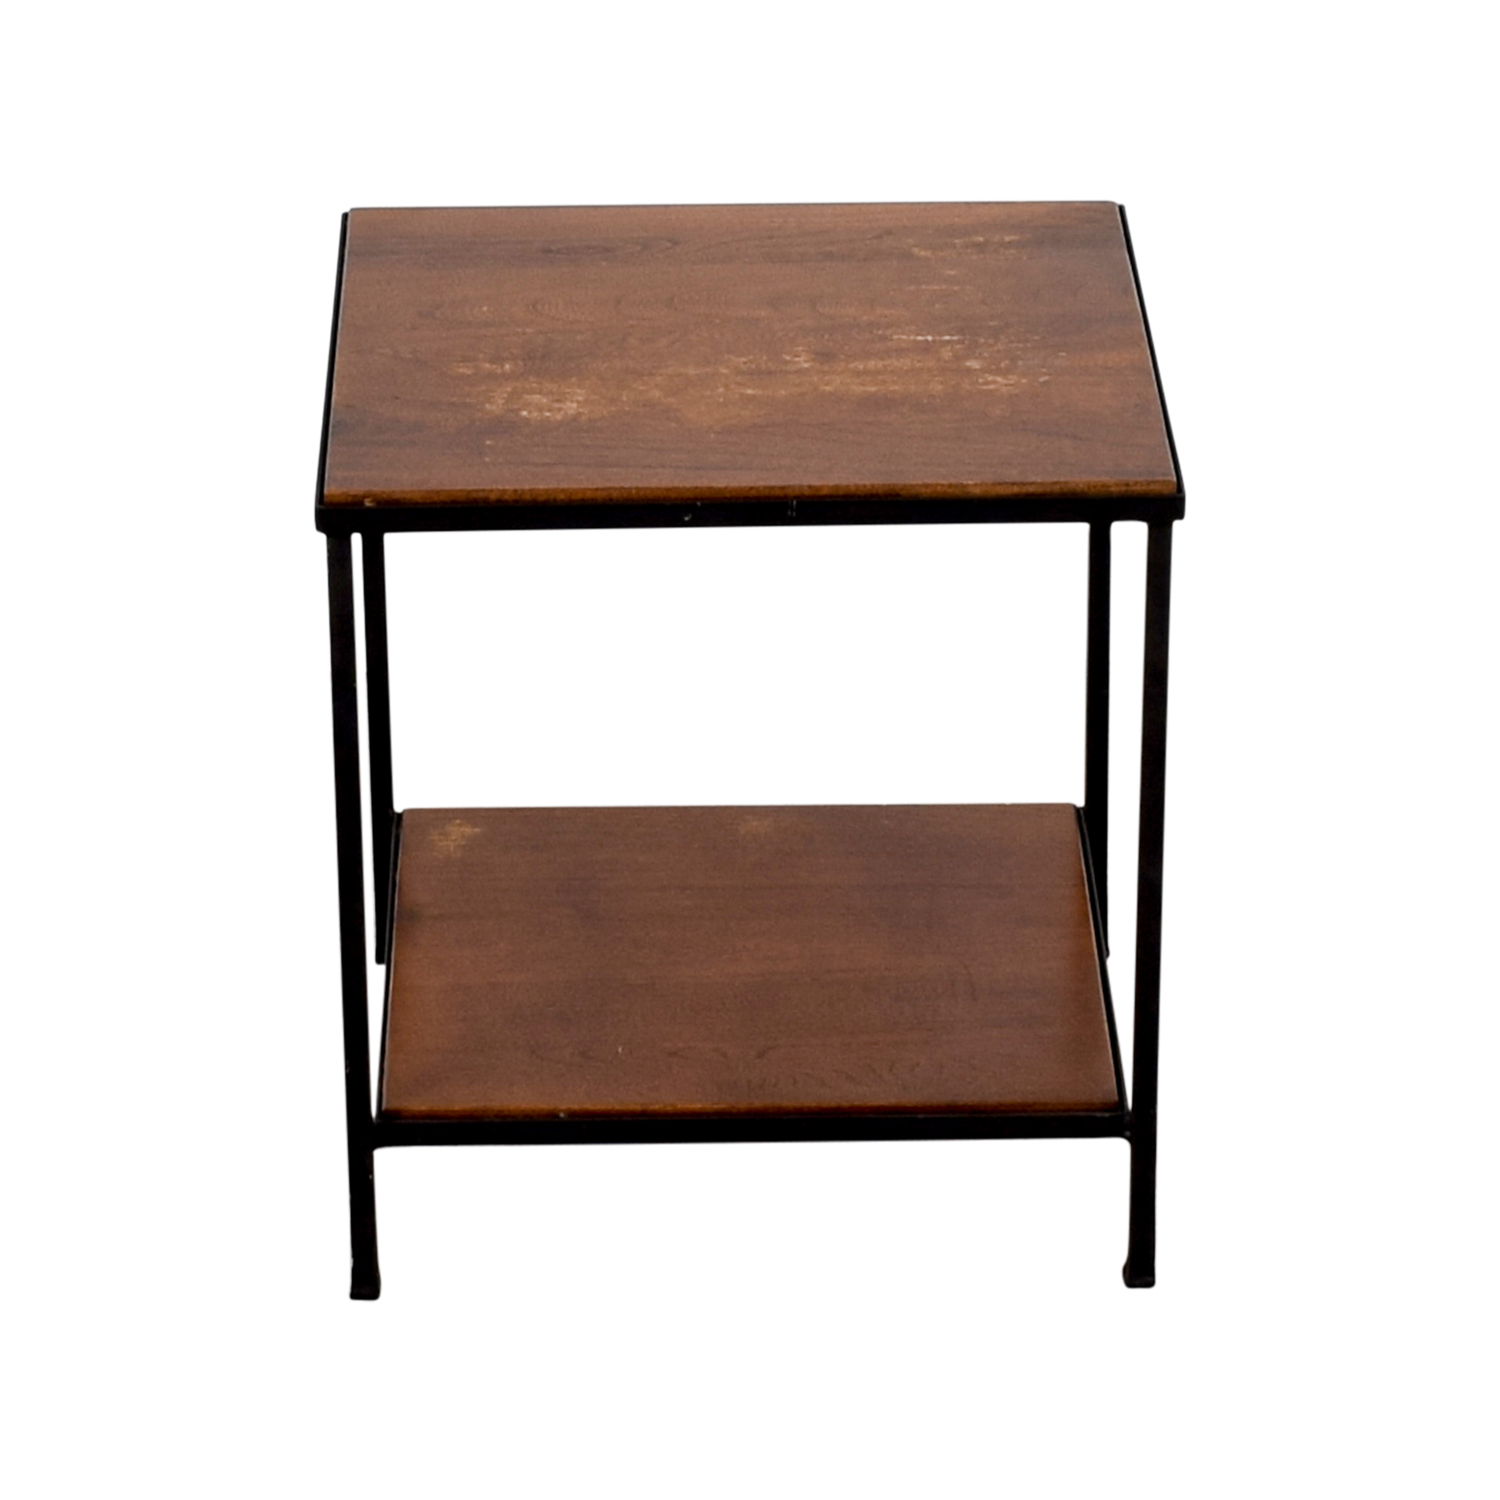 61% OFF Pottery Barn Pottery Barn Wood and Metal Side Table Tables